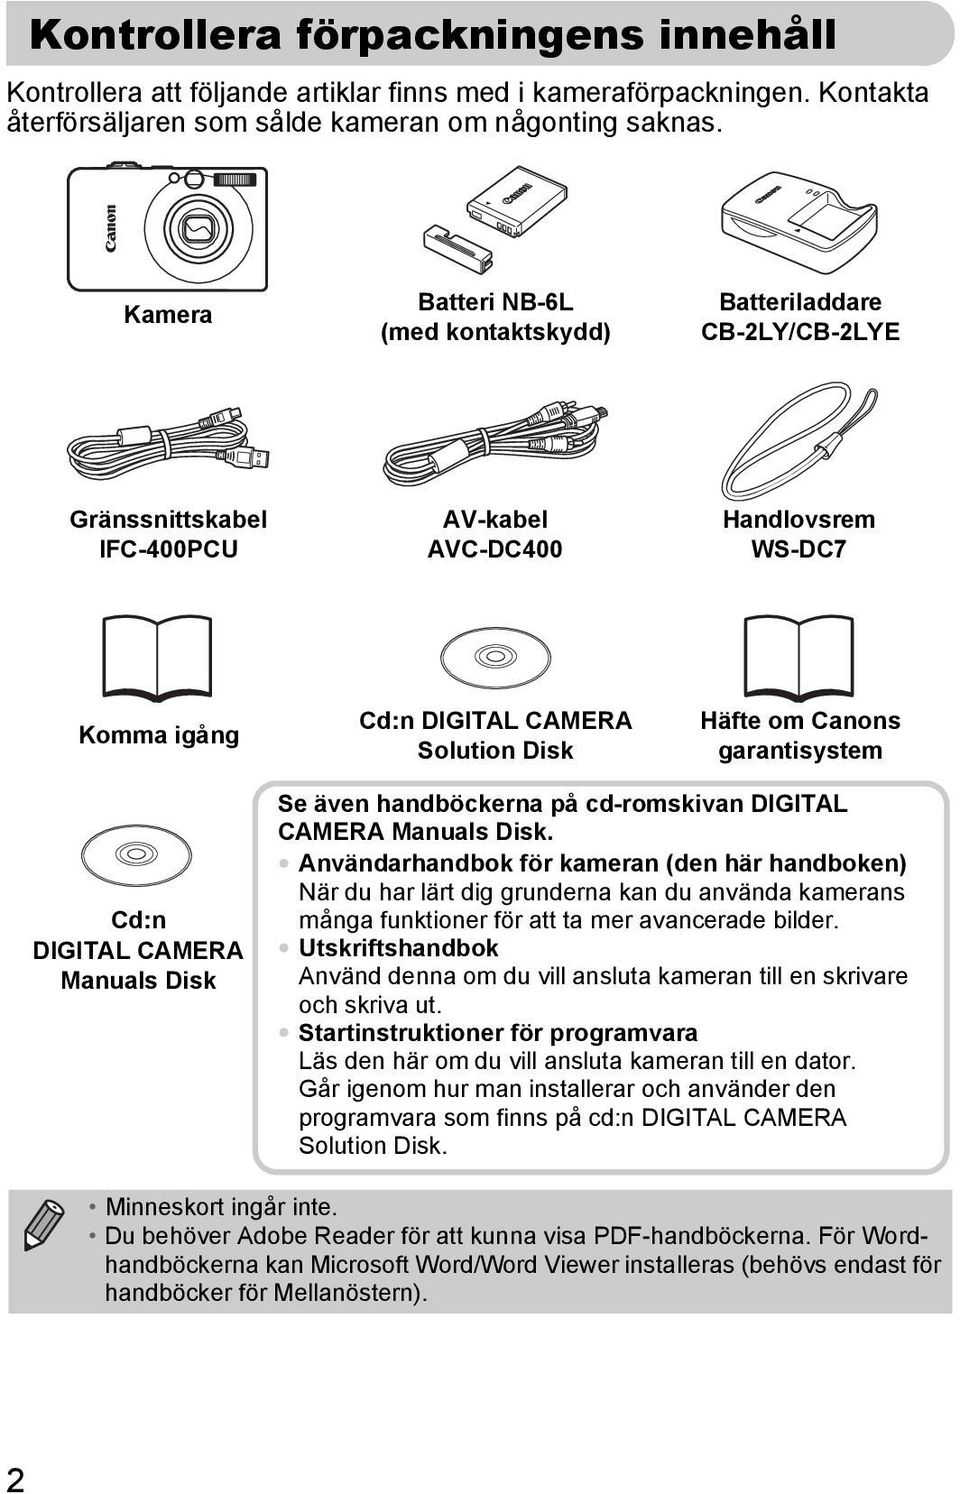 garantisystem Cd:n DIGITAL CAMERA Manuals Disk Se även handböckerna på cd-romskivan DIGITAL CAMERA Manuals Disk.